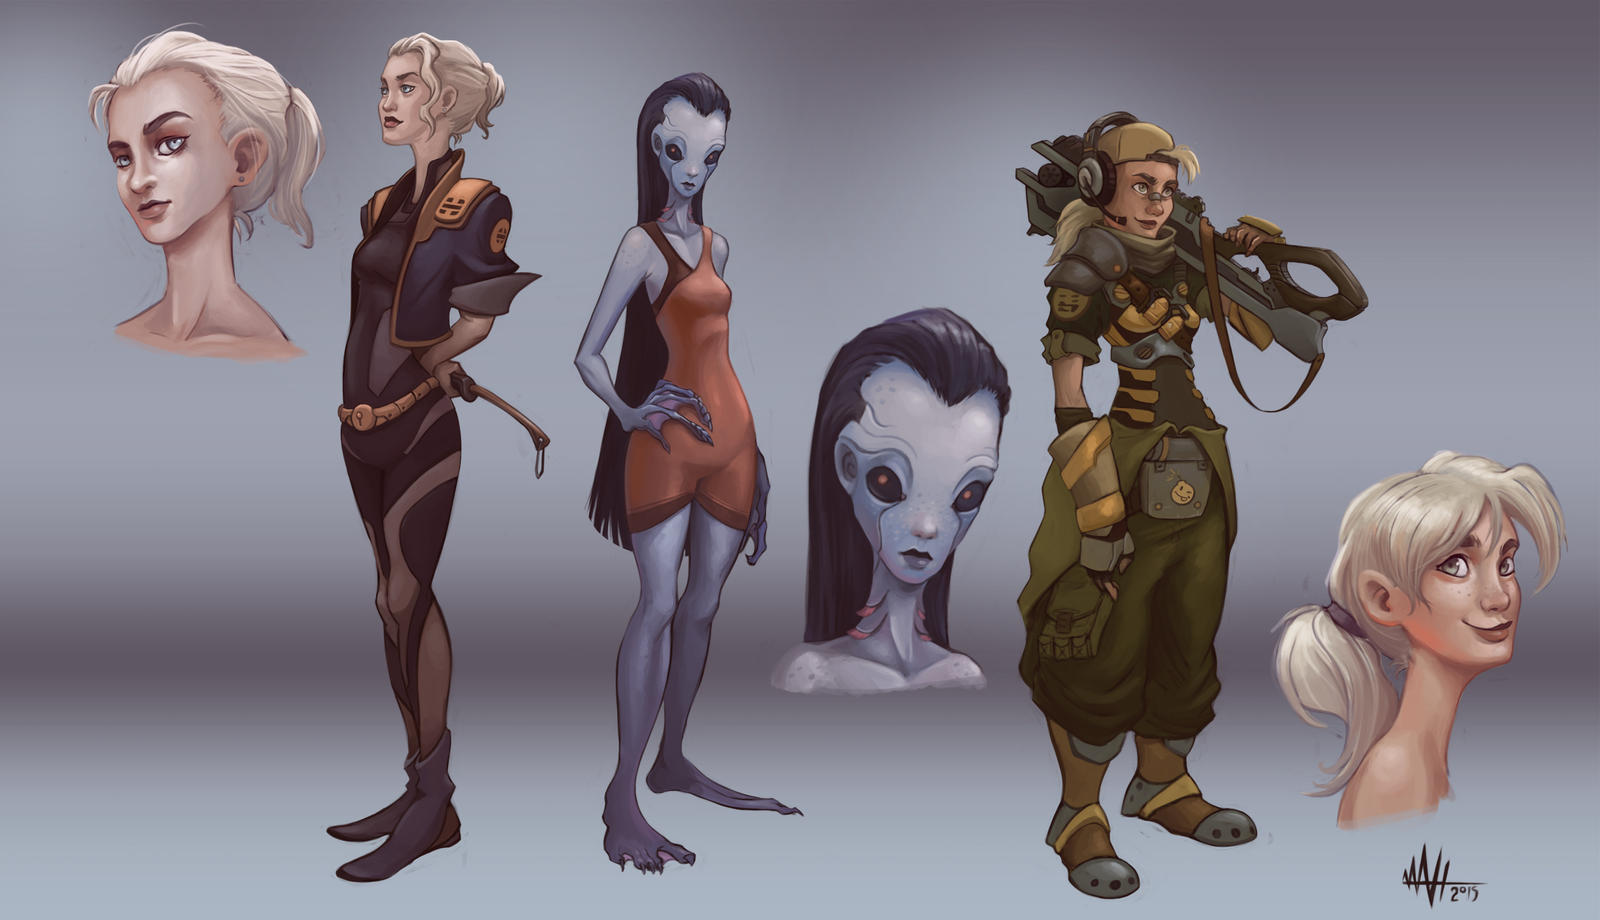 sci_fi_character_commission_by_luca72-d8t0iqu.jpg